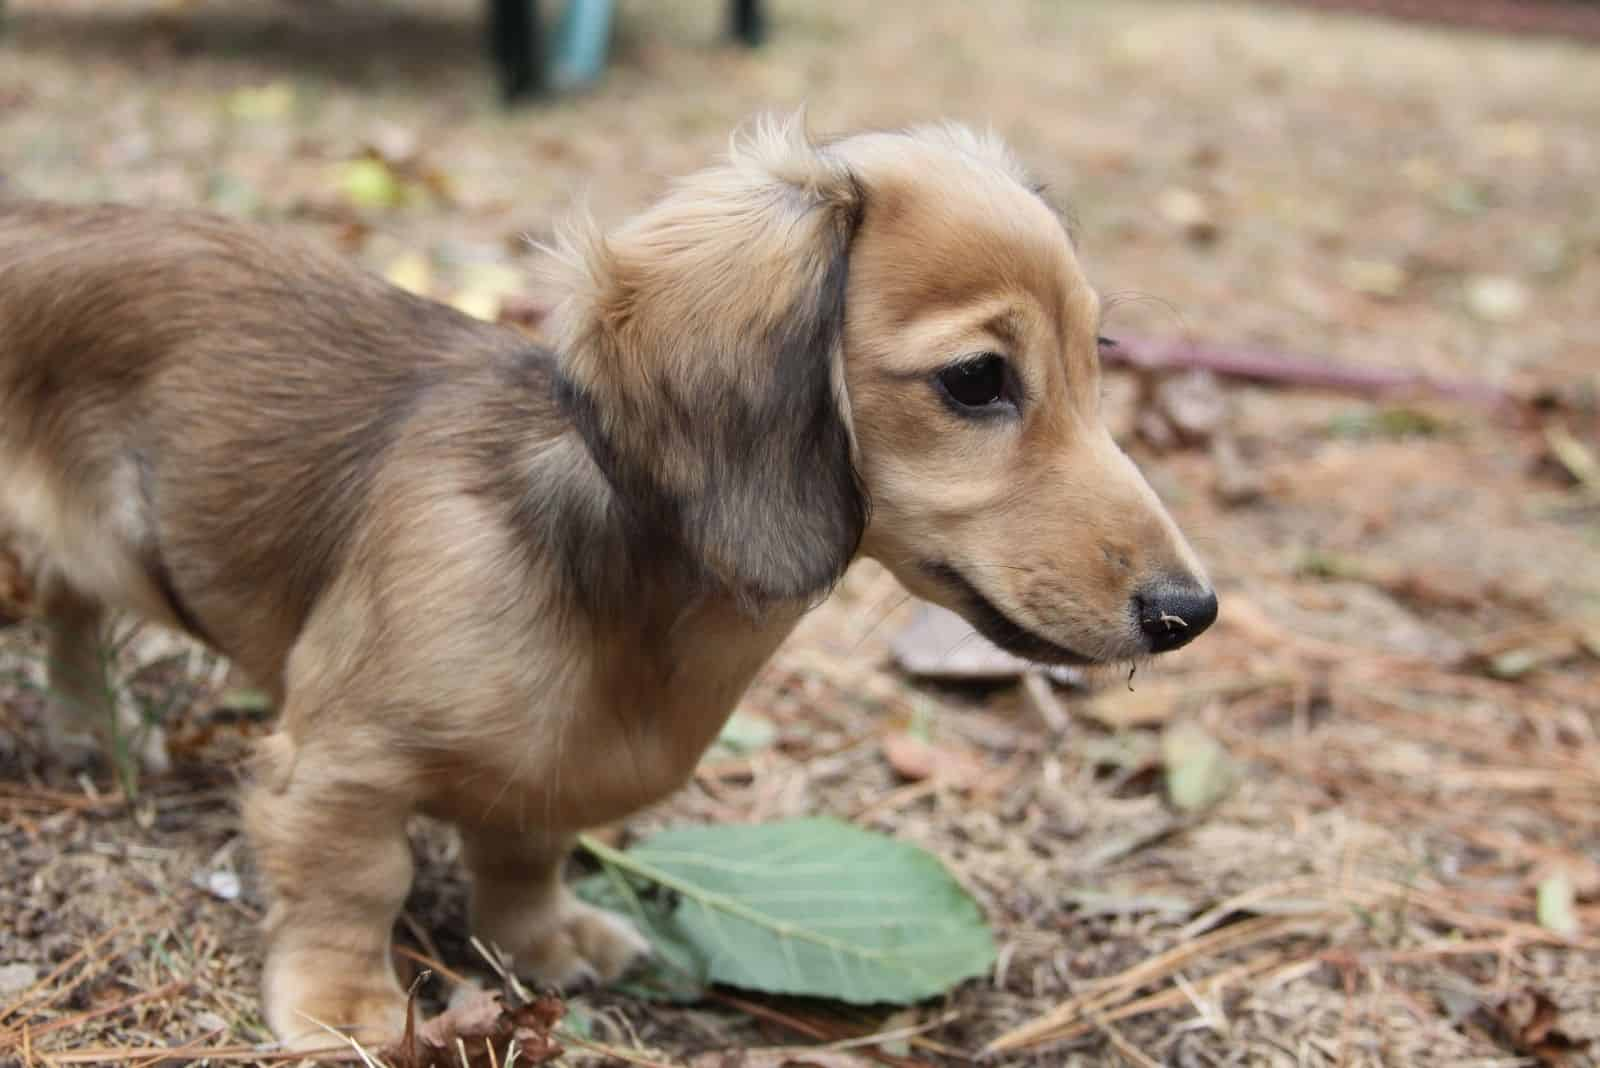 English Cream Long-haired Miniature Dachshund puppy standing outdoors